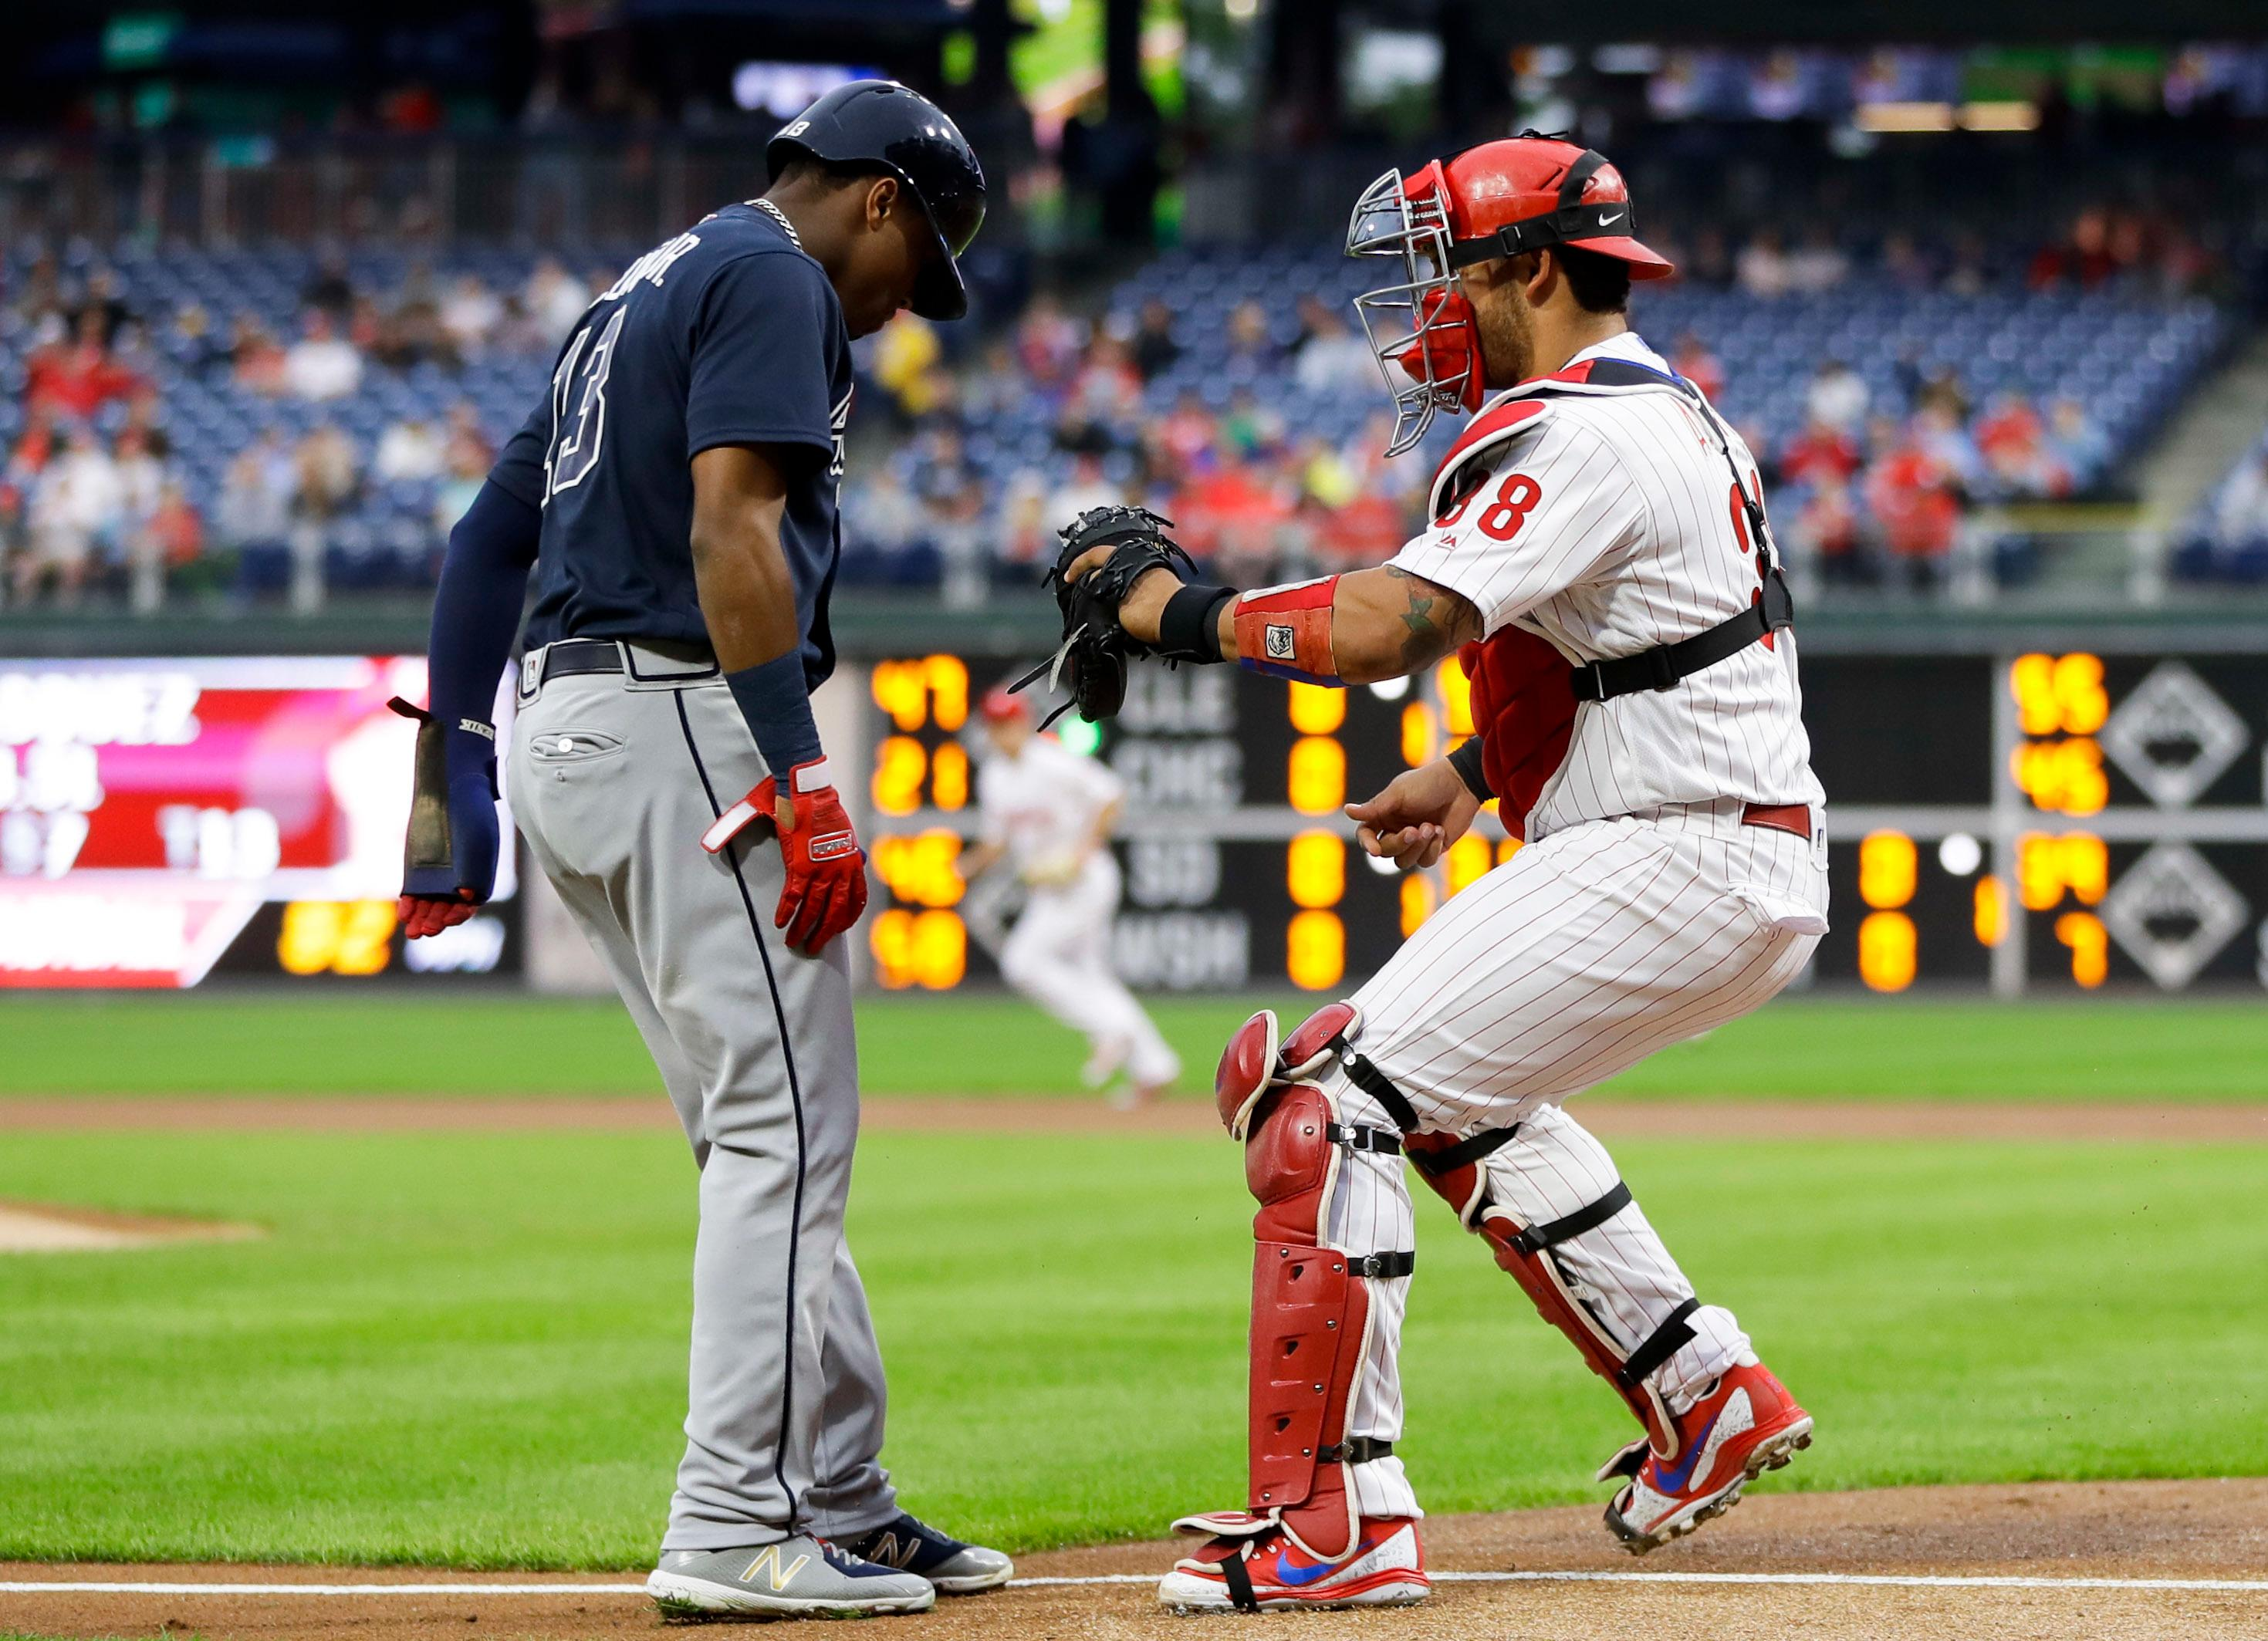 Philadelphia Phillies catcher Jorge Alfaro, right, tags out Atlanta Braves' Ronald Acuna Jr. after Acuna tried to score on a single by Nick Markakis during the first inning of a baseball game, Tuesday, May 22, 2018, in Philadelphia. (AP Photo/Matt Slocum)